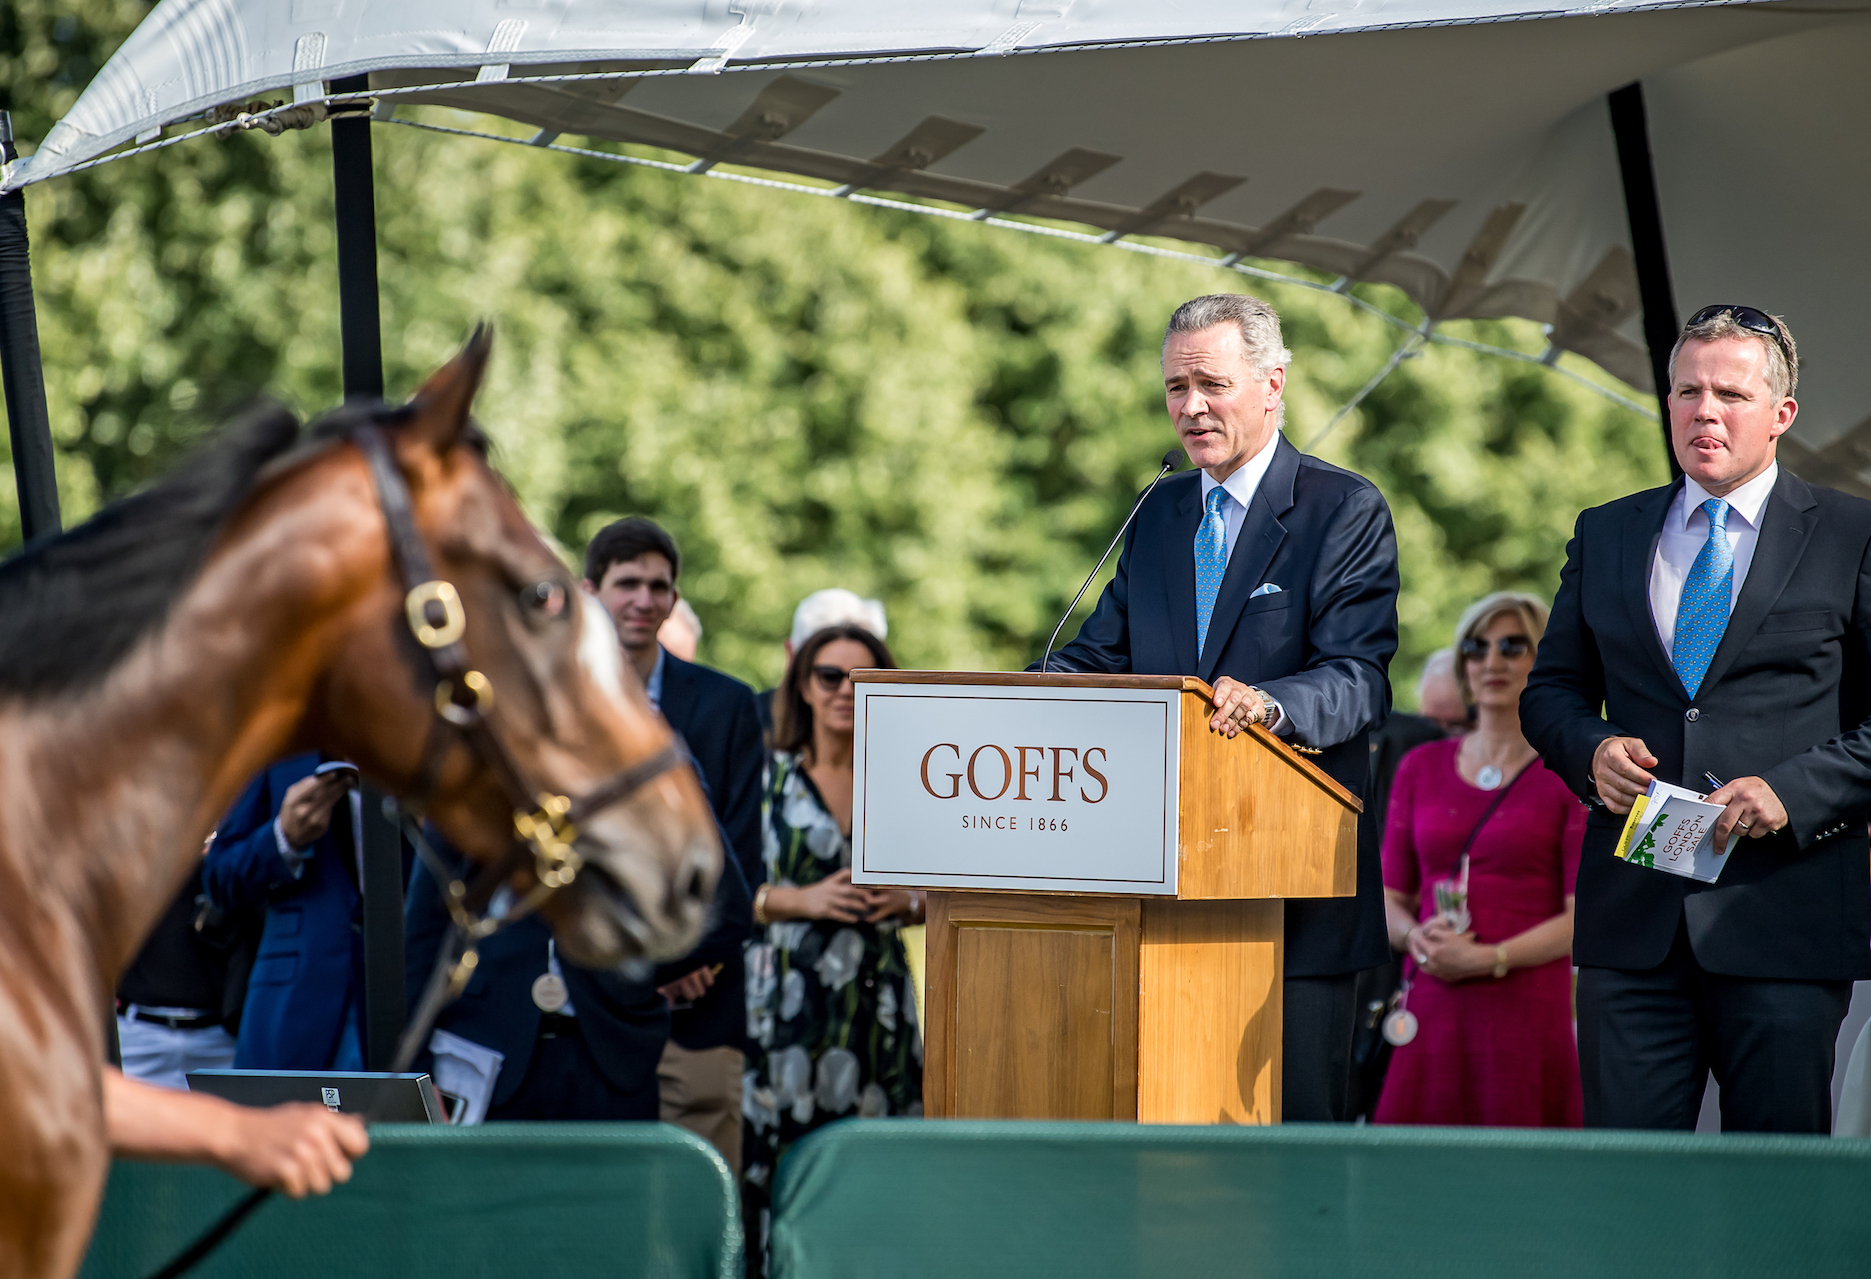 Goffs Group Chief Executive, Henry Beeby, on the rostrum at the 2018 Goffs London Sale. Photo: Sarah Farnsworth